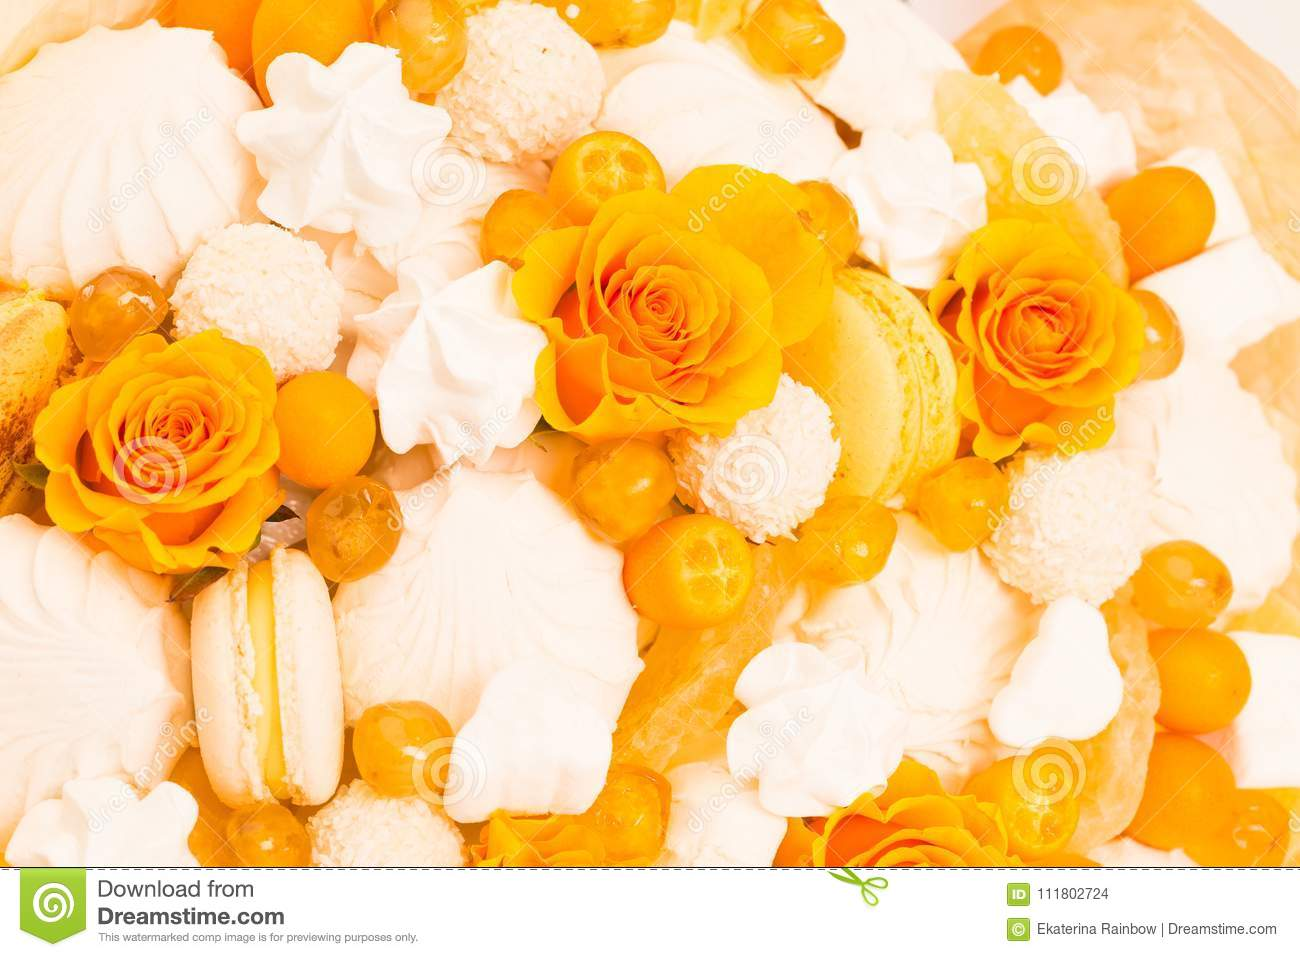 Flowers fruit bouquet white isolated yellow rose marshmallow beautiful spring sweet candies flowers bouquet yellow rose marshmallows macaroons yellow color white isolated background amazing flowers izmirmasajfo